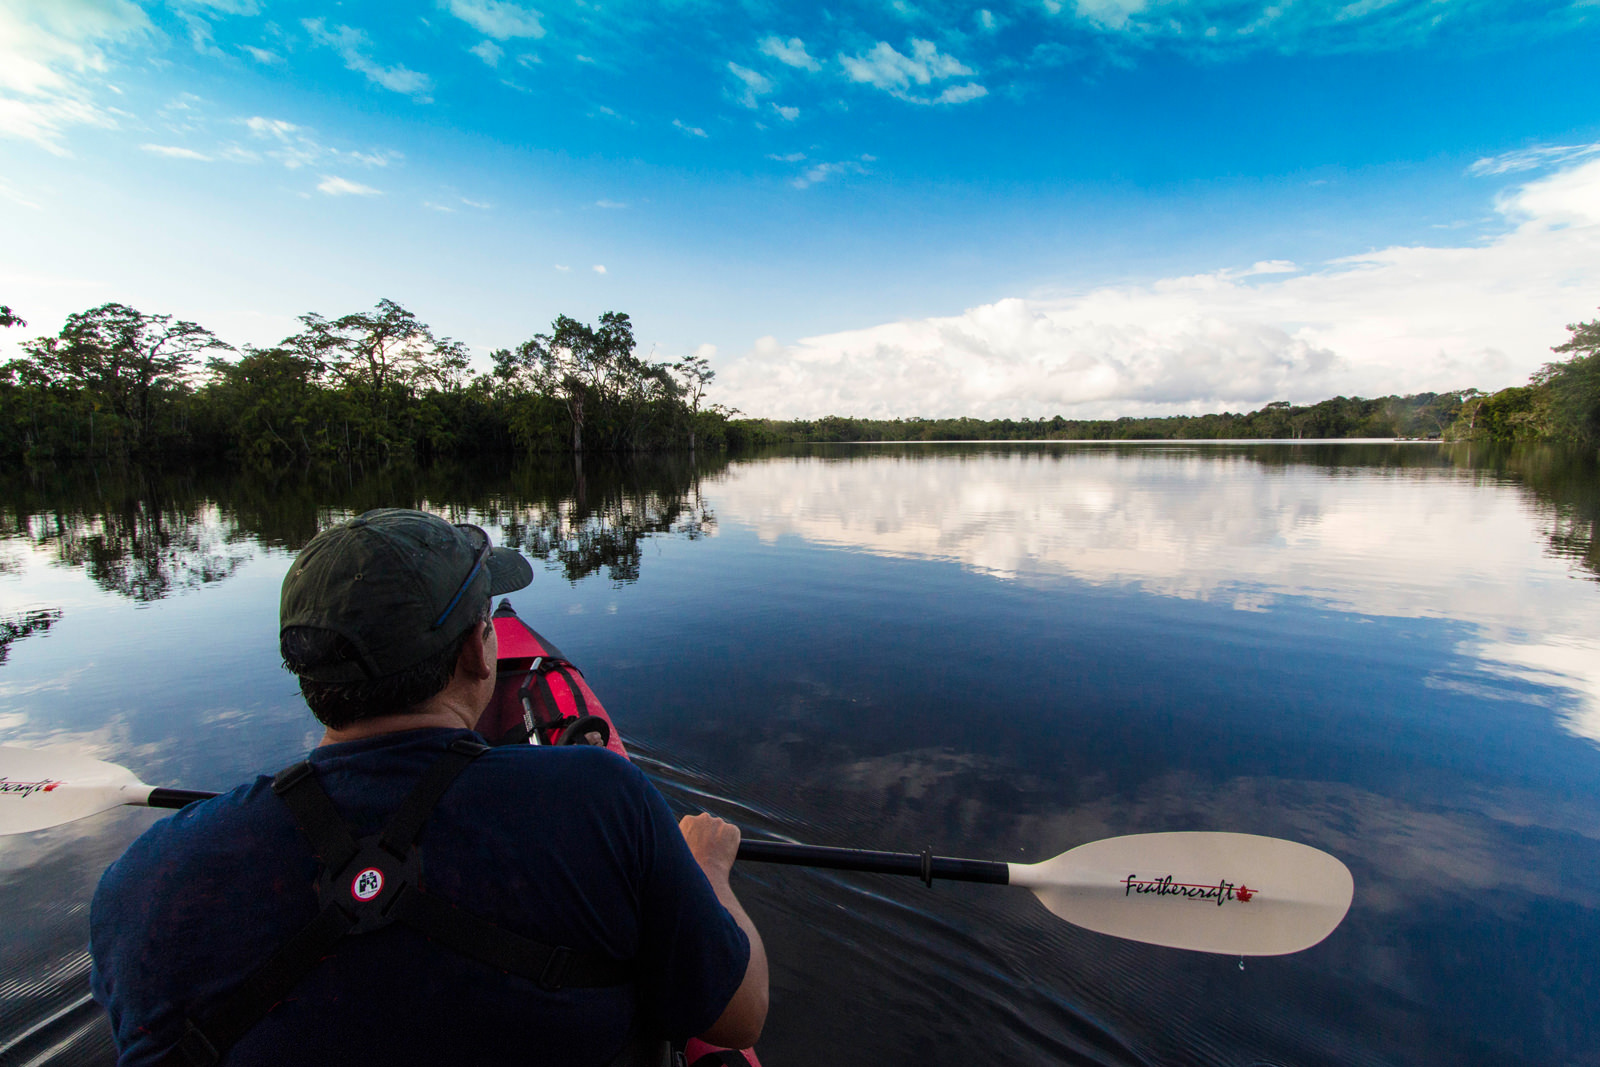 Kayaker on beautiful mirror calm Amazon lake